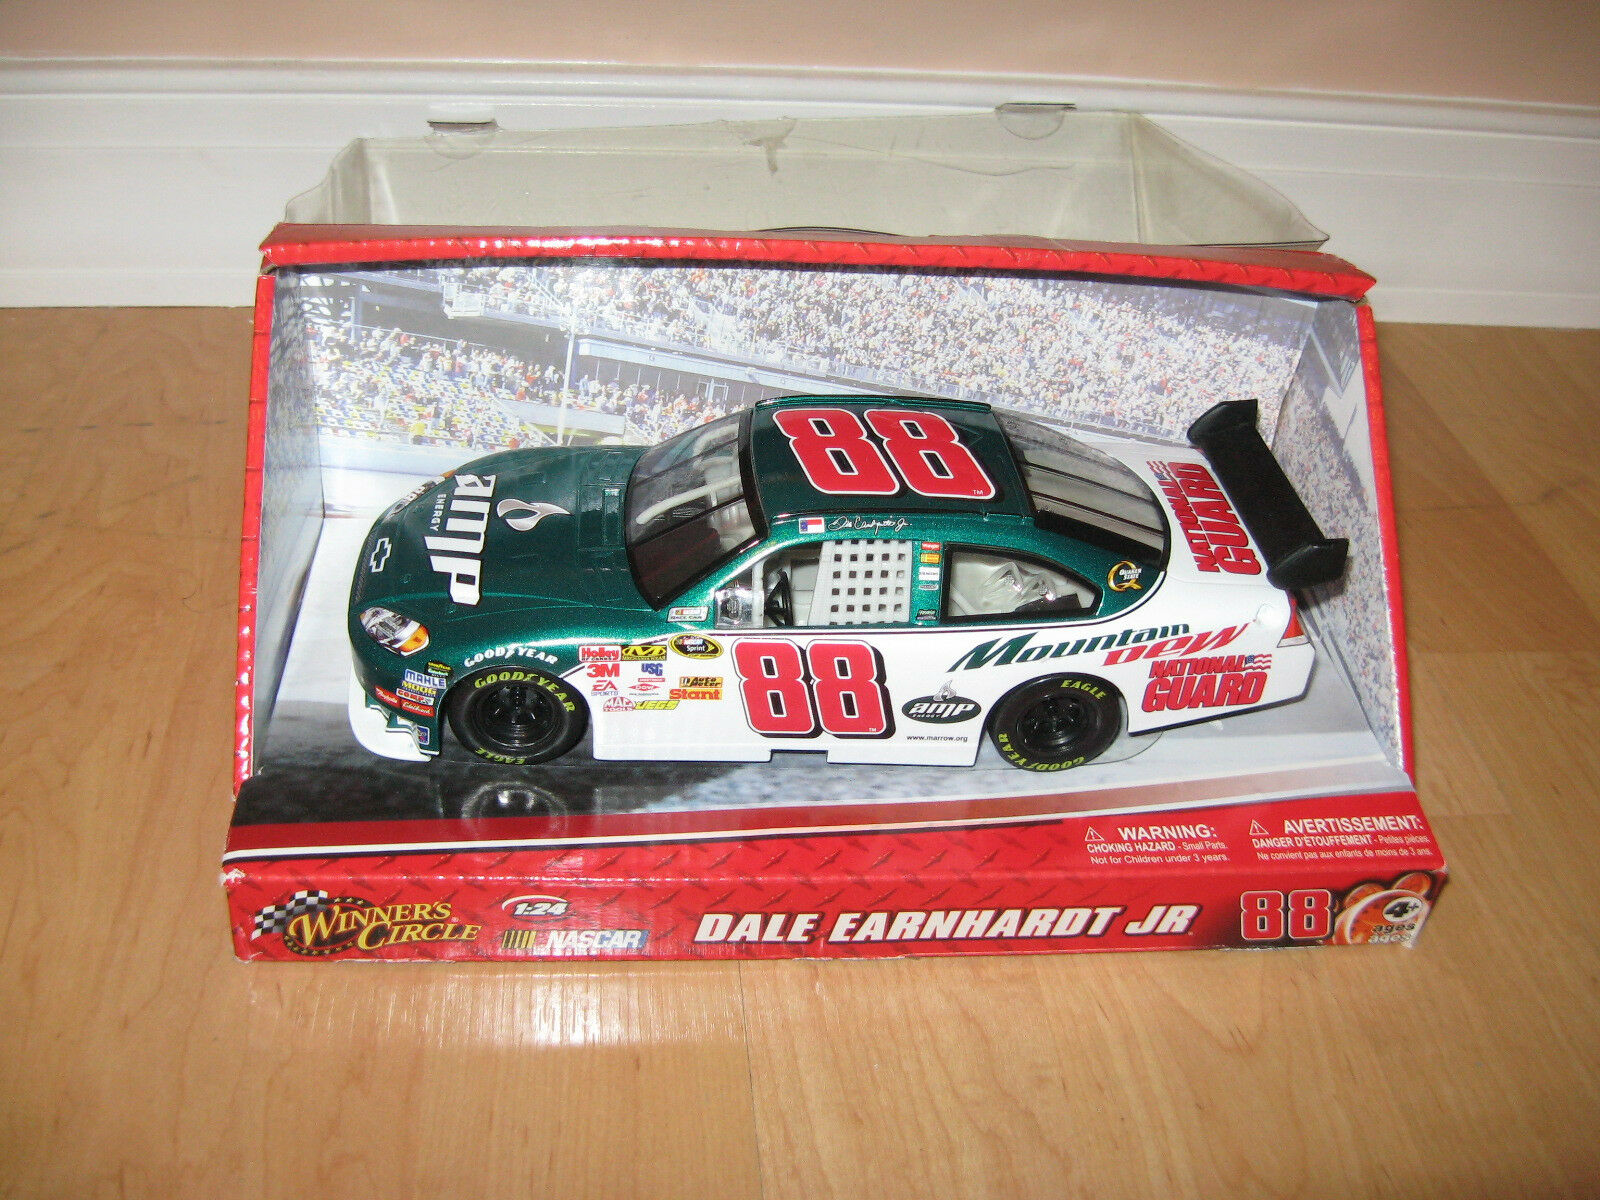 Nascar model car Dale Earnhardt Jr 88 scale 1 24 -open box, never used